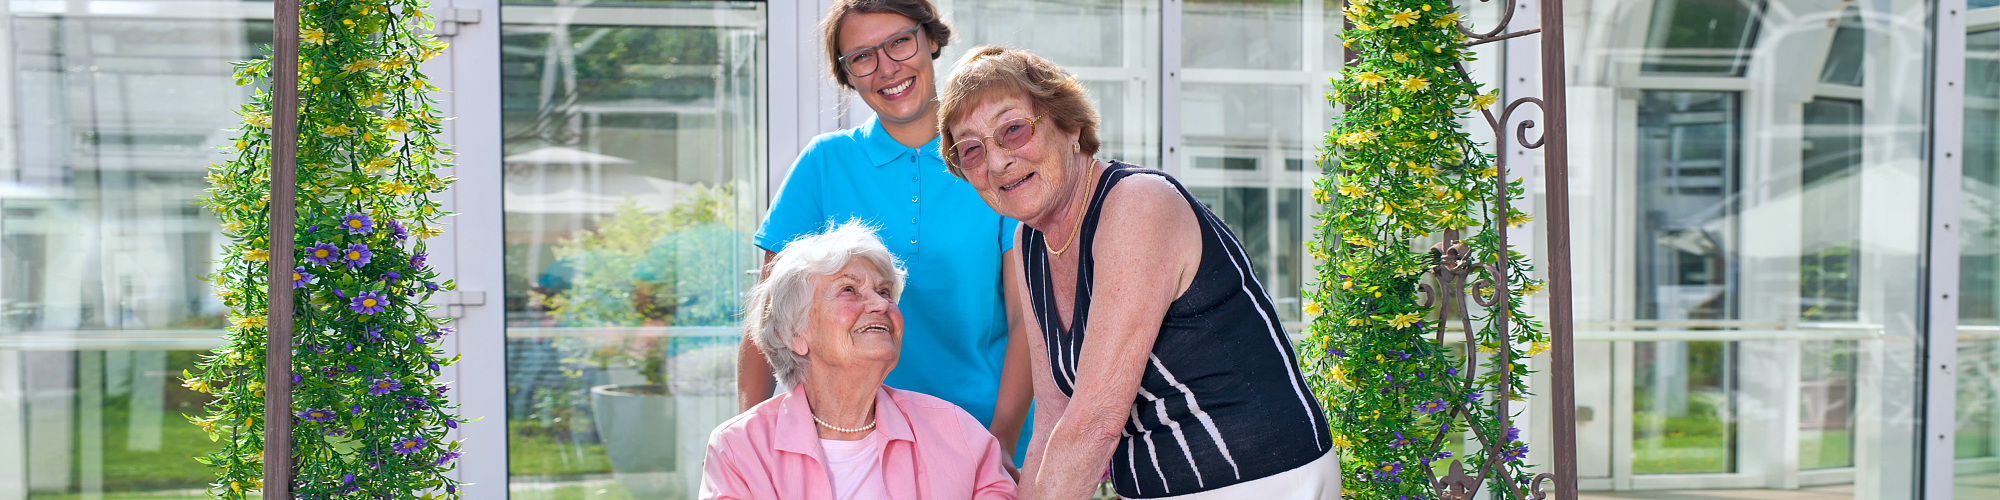 two seniors and caregiver smiling